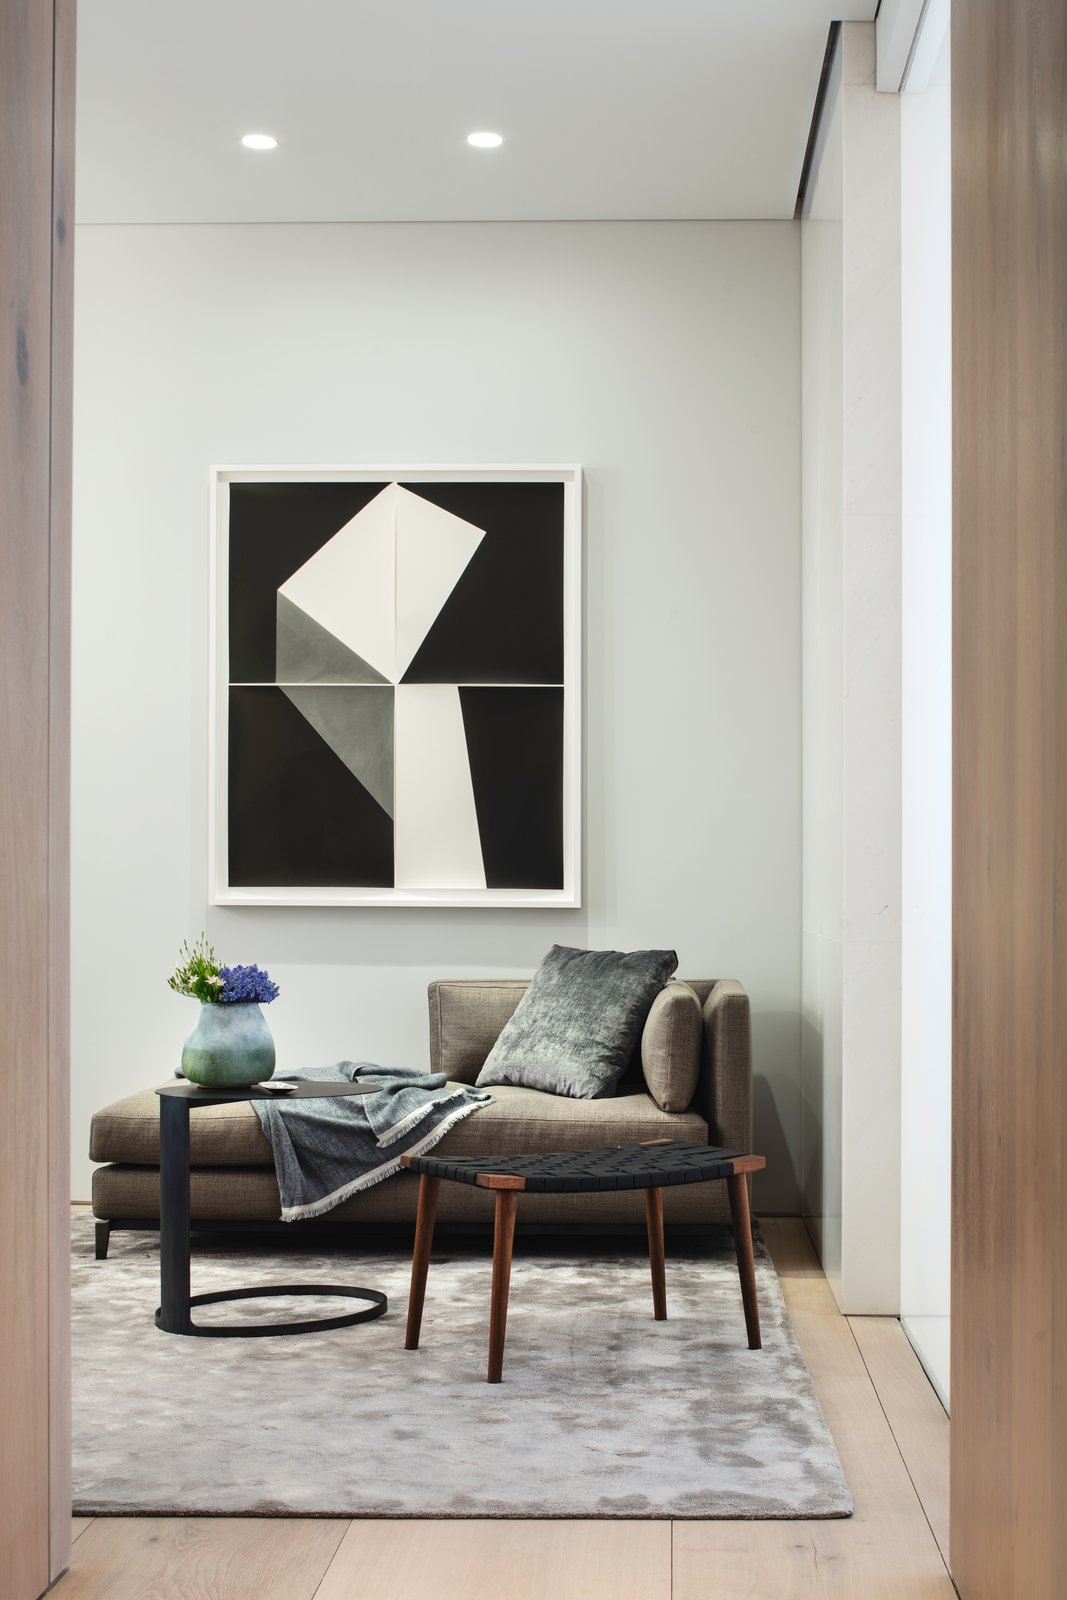 The home has been furnished by DDC, accessorized by Atelier Courbet, and features artwork by Yossi Milo Gallery. A Look Into NYC's 152 Elizabeth Street, Tadao Ando's First Residential Project Outside of Asia - Photo 9 of 10